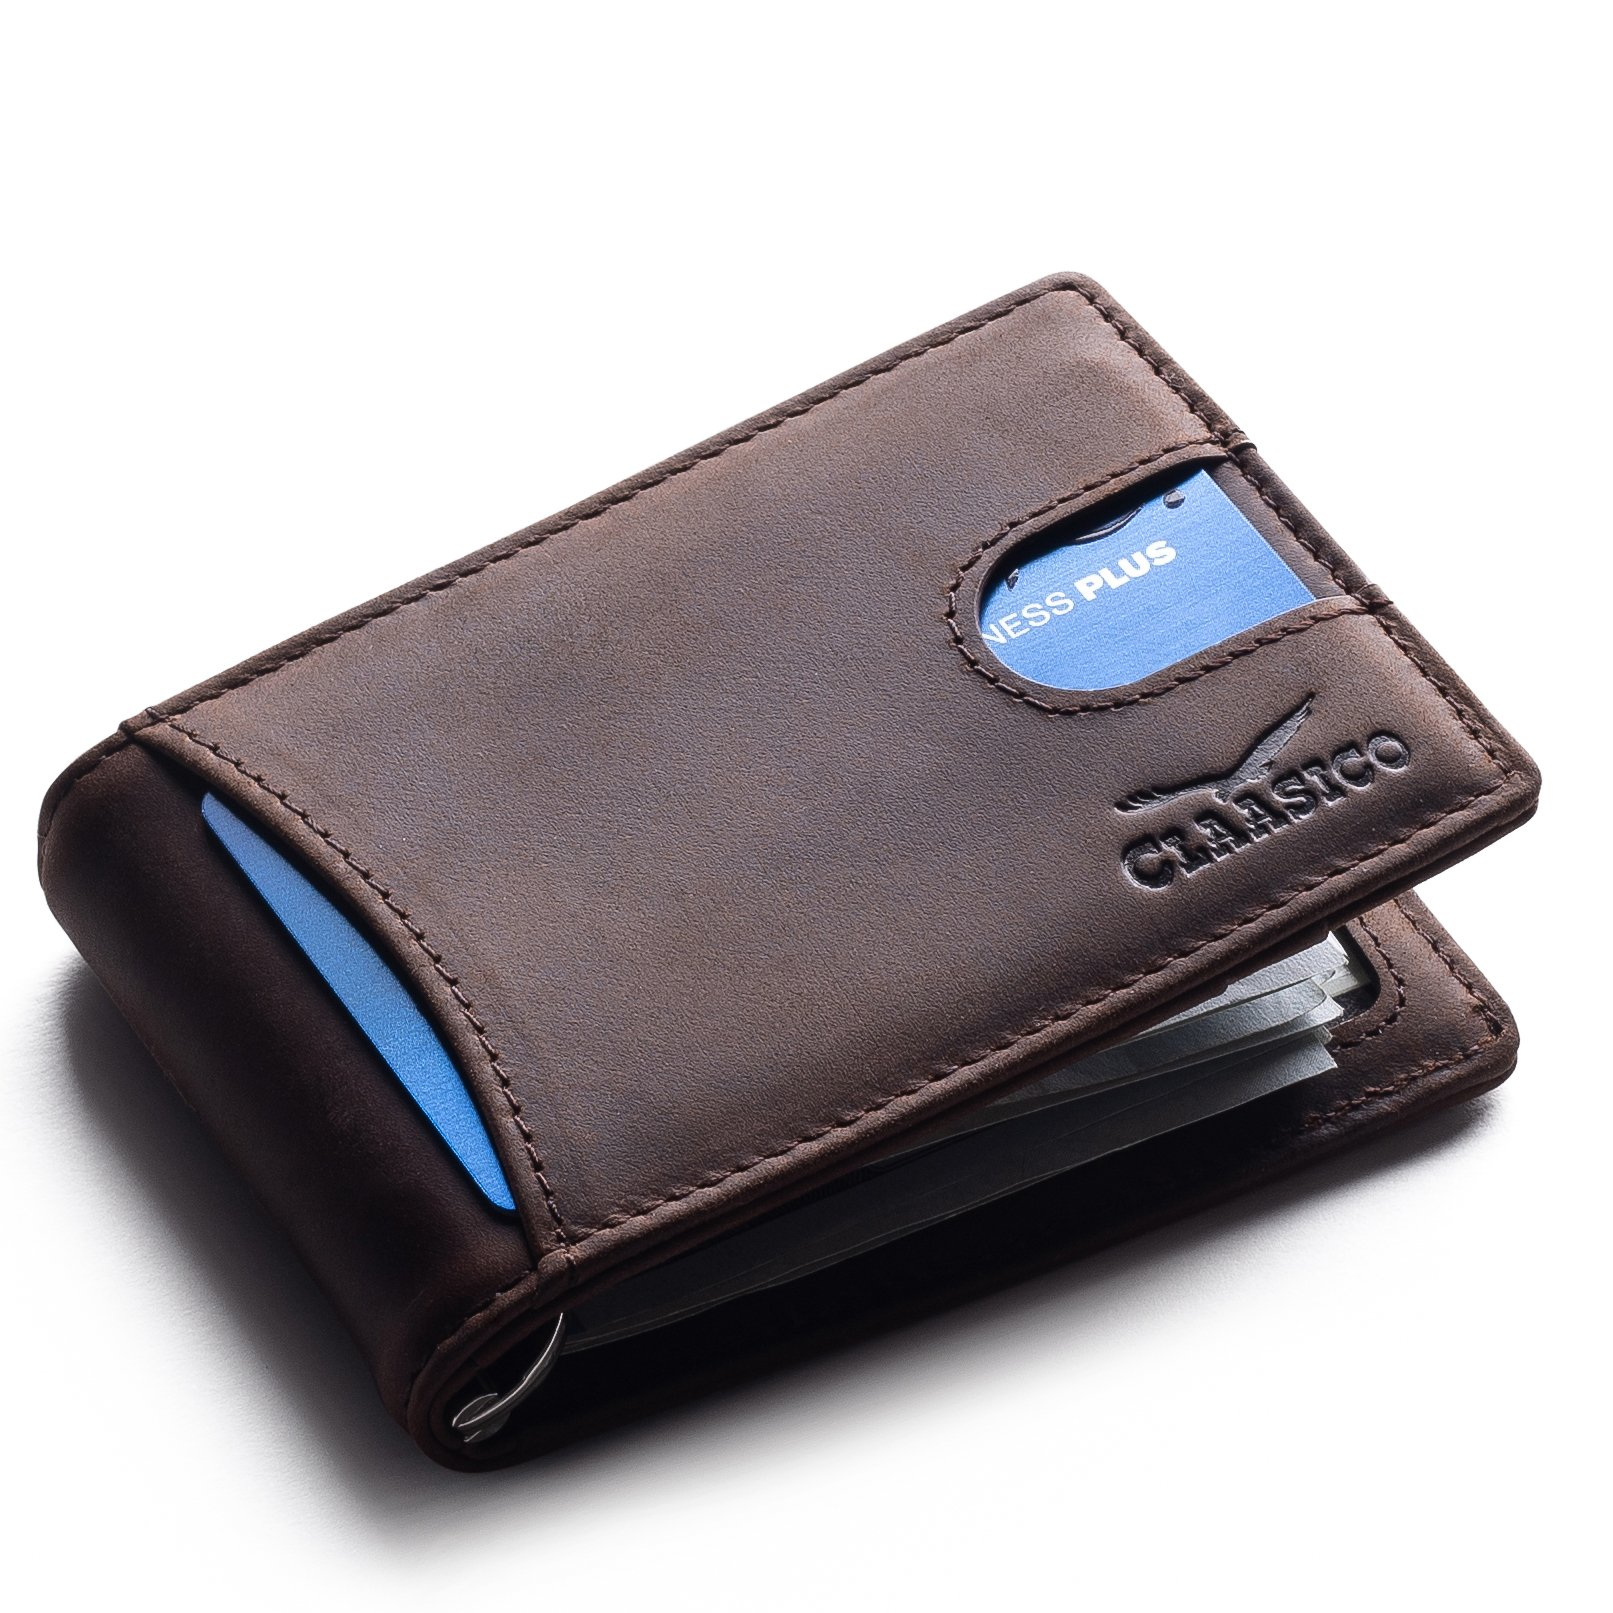 Super Slim RFID Leather Wallet For Men Card Holder With Money Clip Prefect For Travel & Front Pocket Use